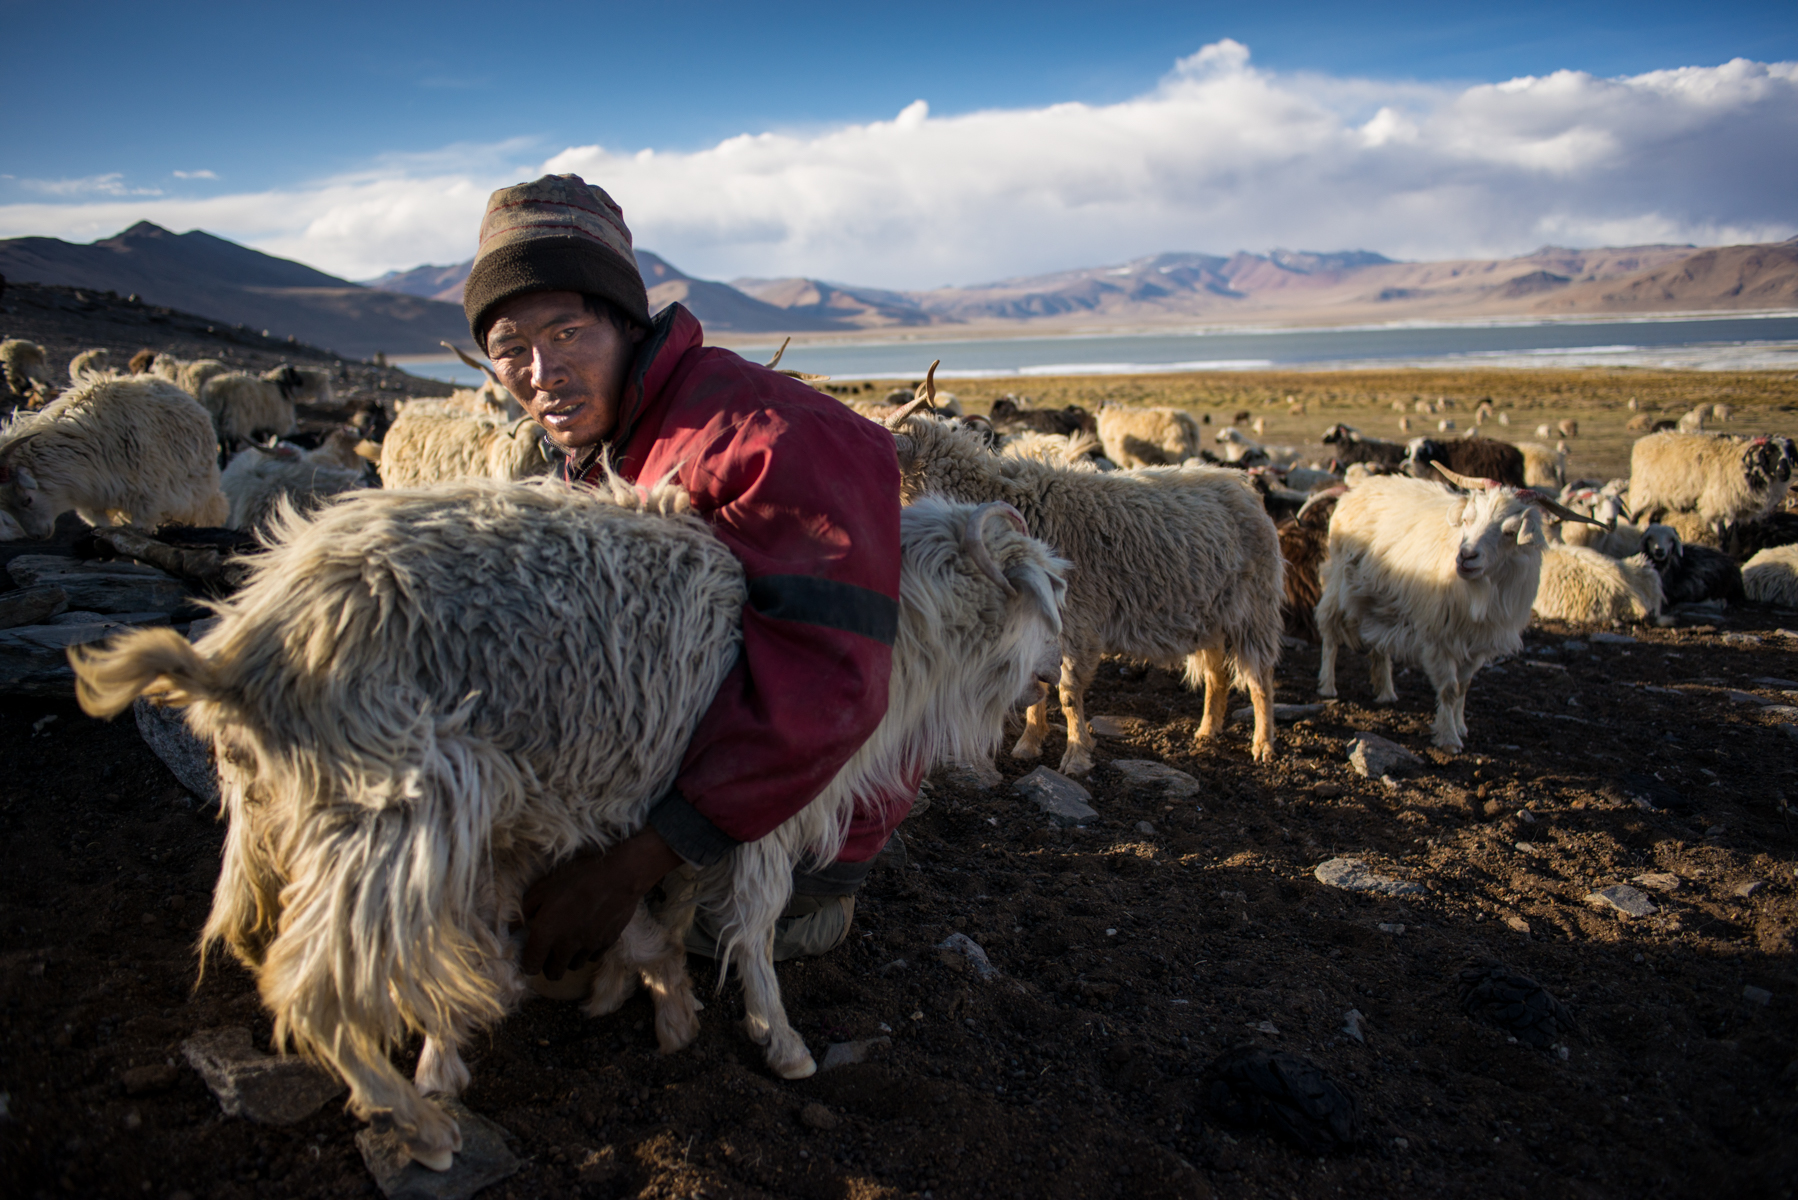 Milking time in the Changthang